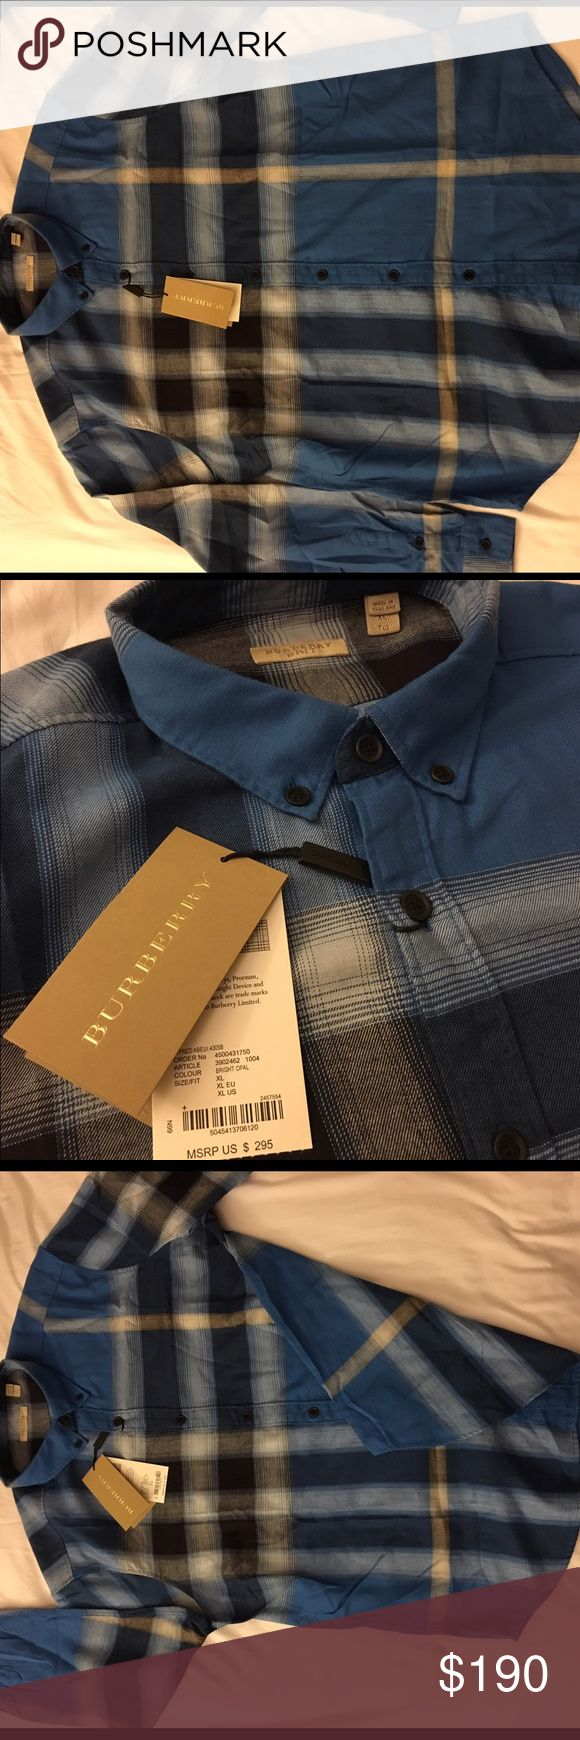 New authentic burberry shirt for men xl New with tags authentic burberry shirt for men blue color size xl original price is 295$ Burberry Shirts Casual Button Down Shirts